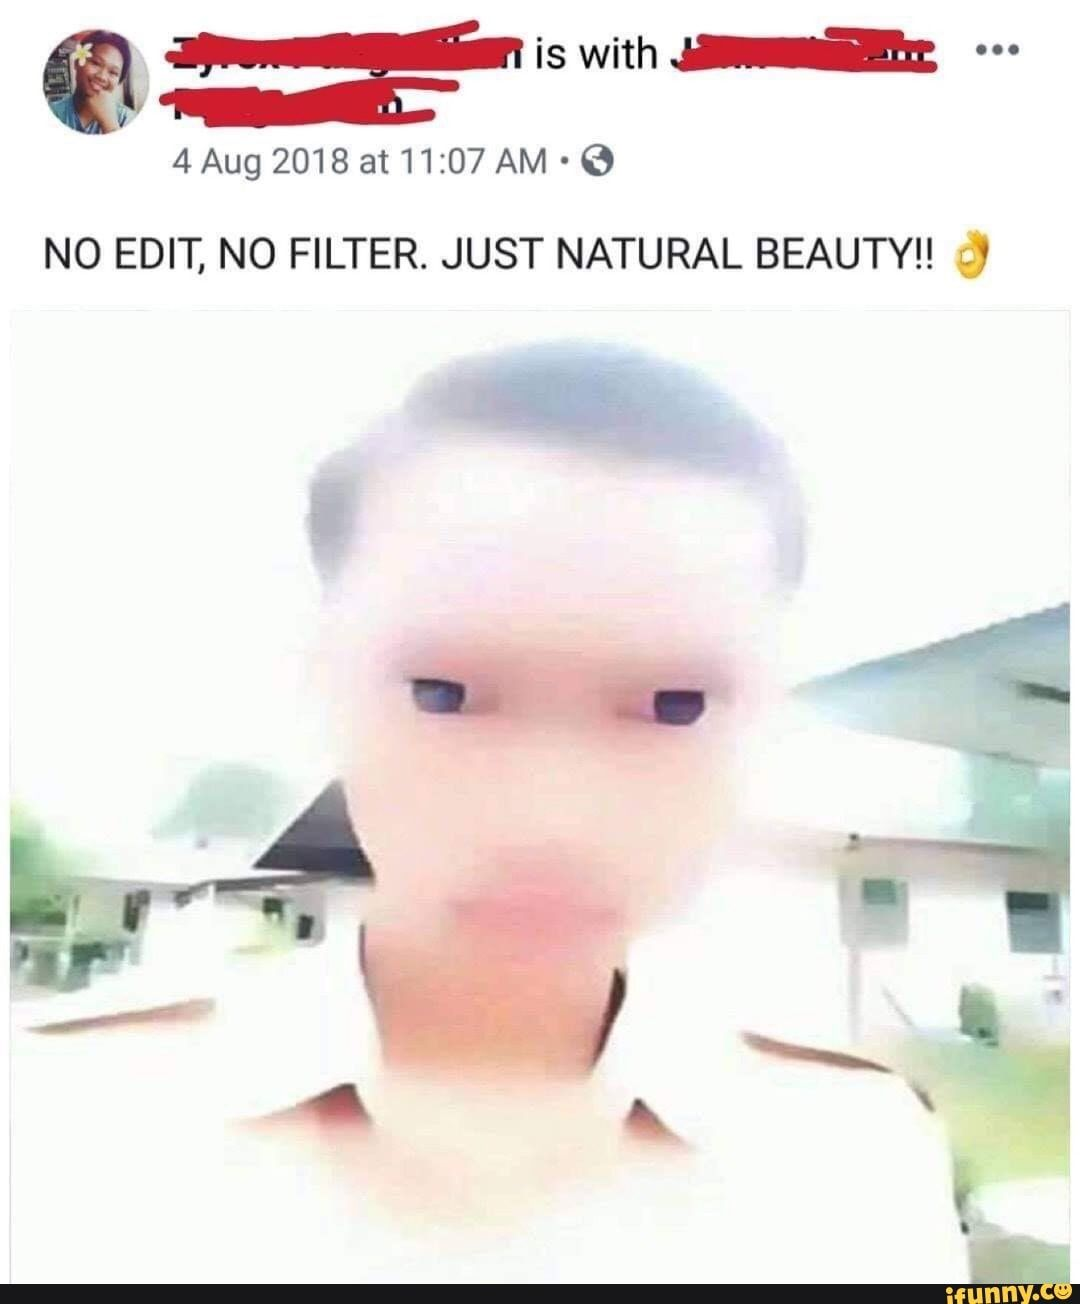 Www 4augzo18at11zo7am E N0 Edit N0 Filter Just Natural Beauty Ifunny Stupid Memes Funny Relatable Memes Stupid Funny Memes